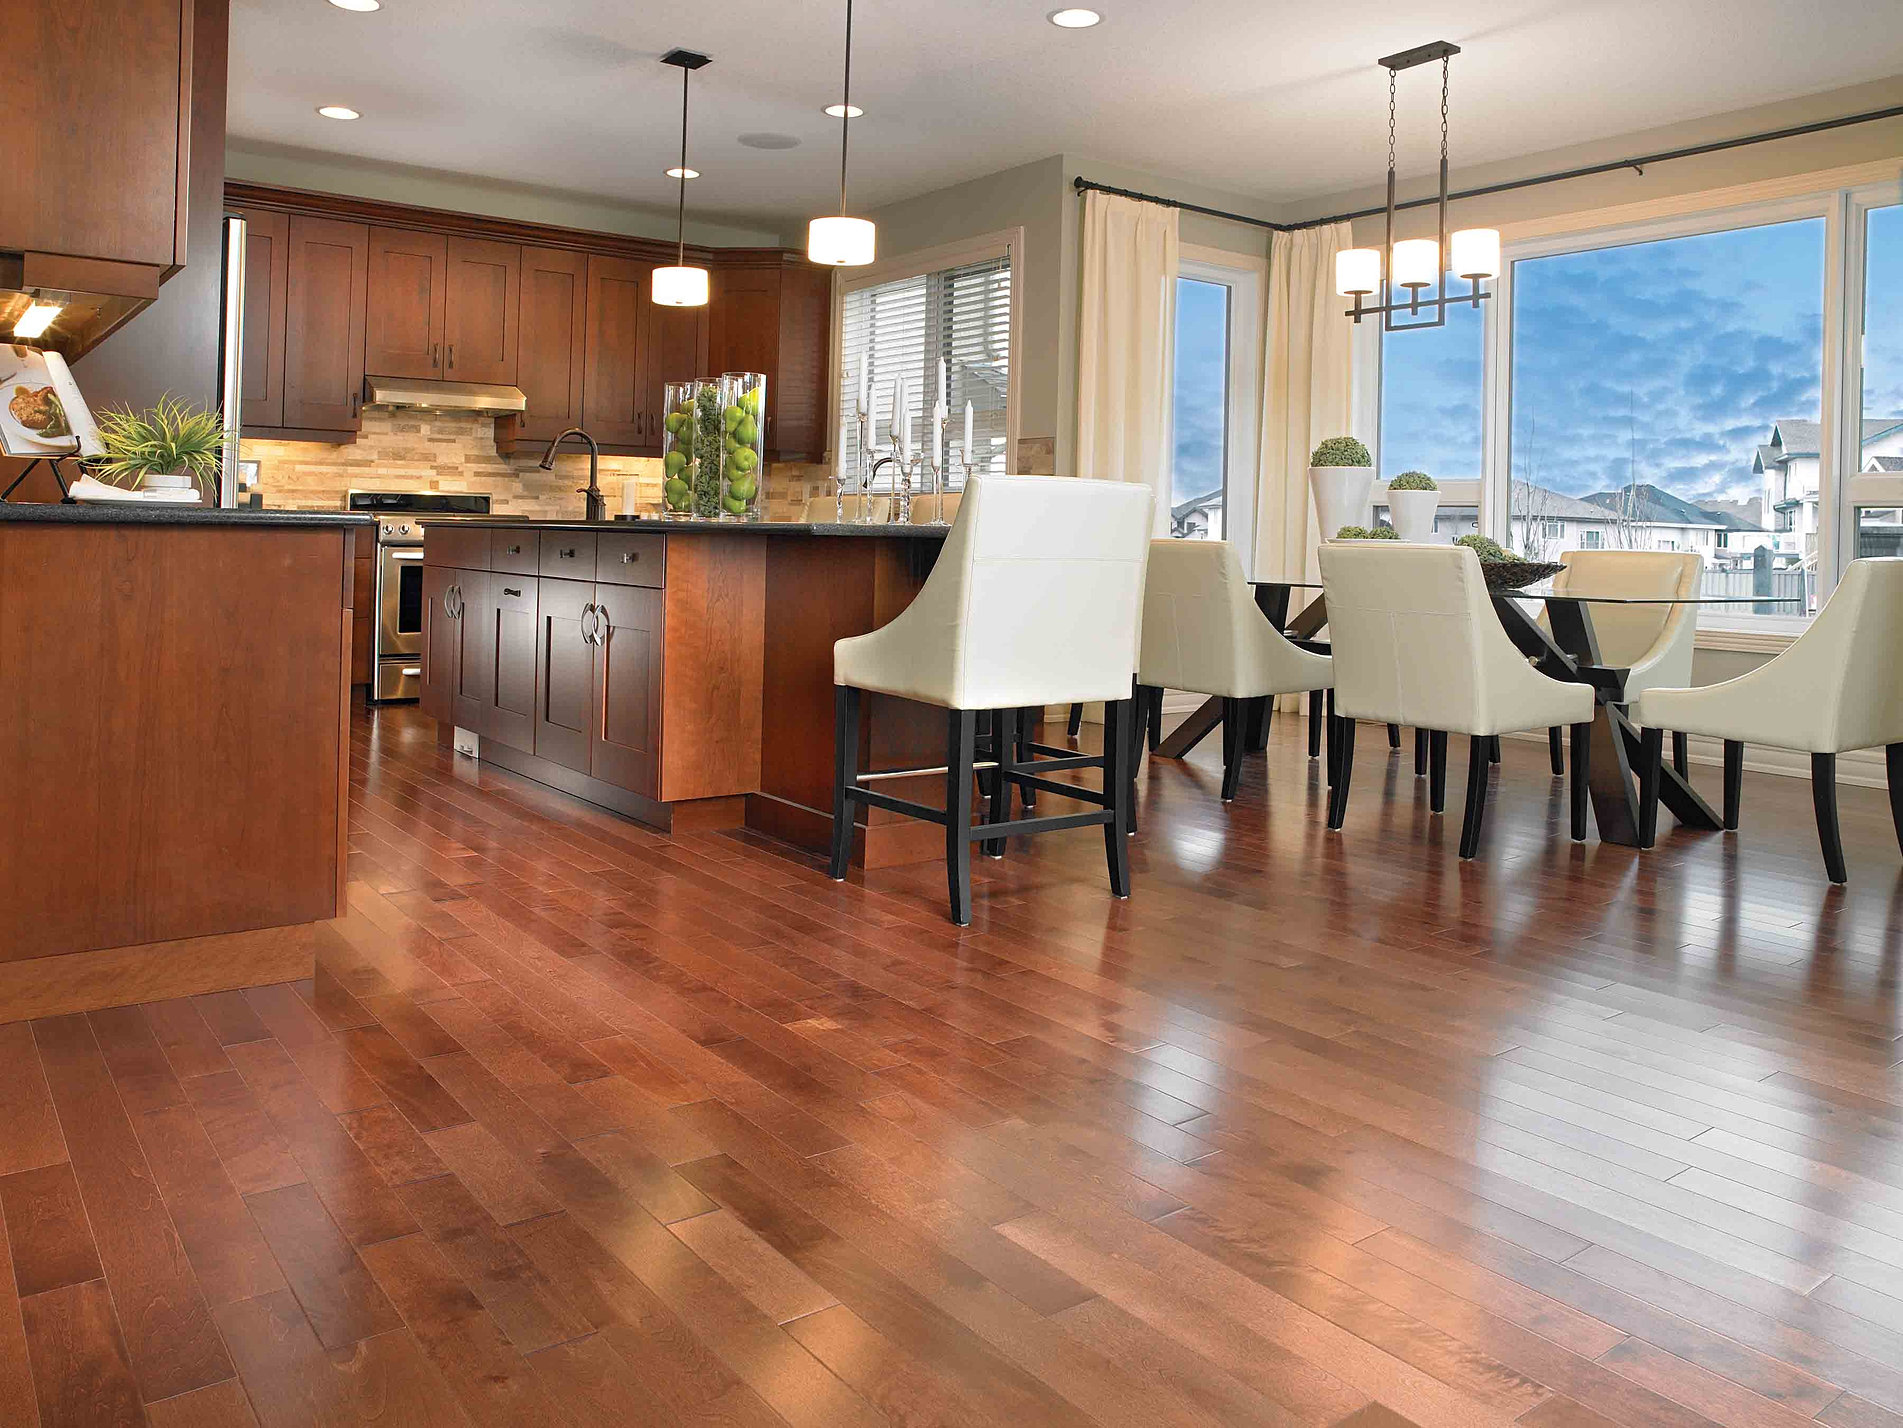 Hardwood Flooring In The Kitchen Calvetta Brothers Floor Show 216 220 6473